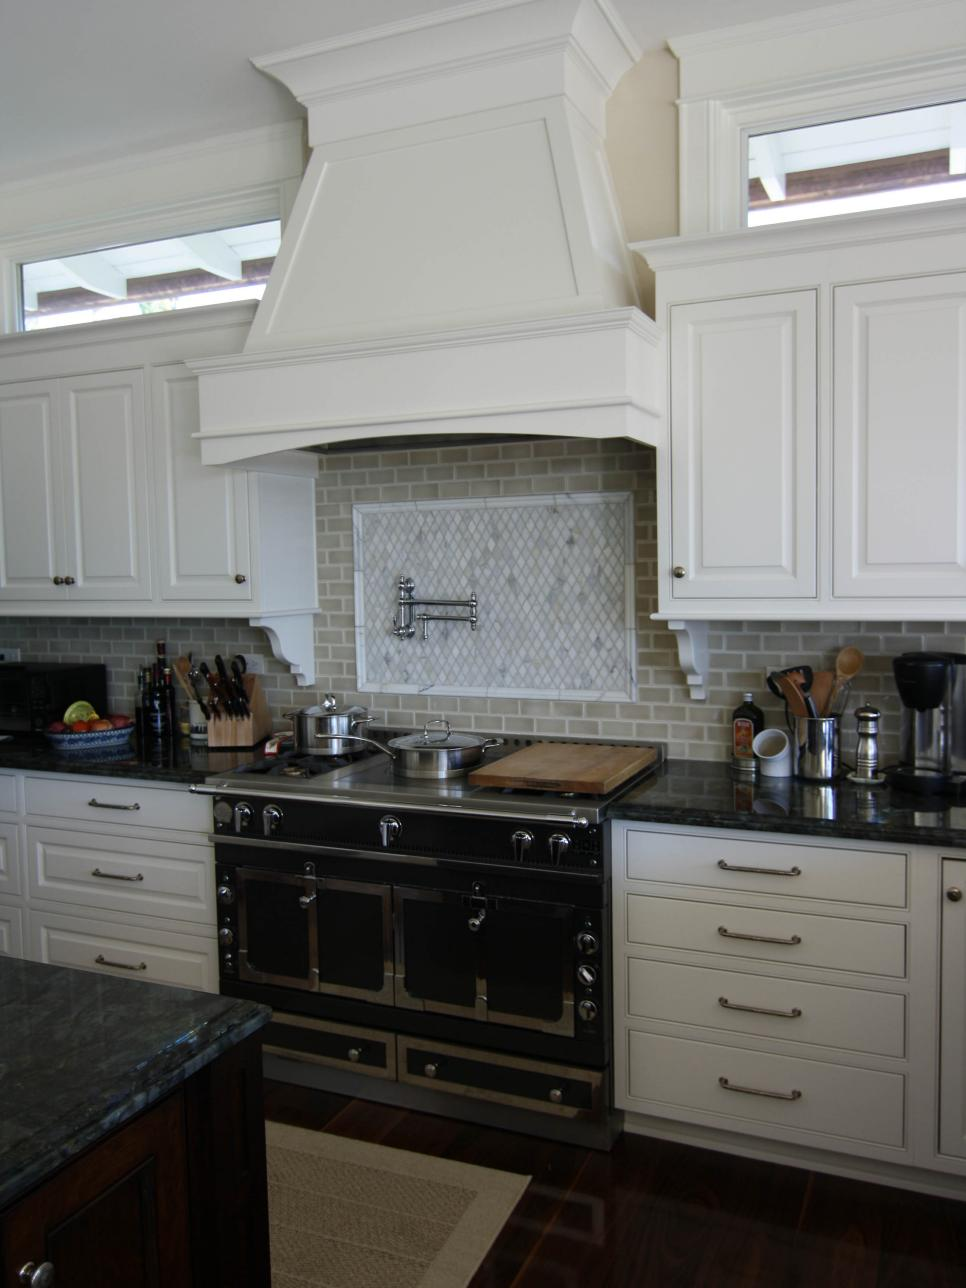 Hgtv 39 s best pictures of kitchen cabinet color ideas from top designers hgtv for Kitchen cabinet options design